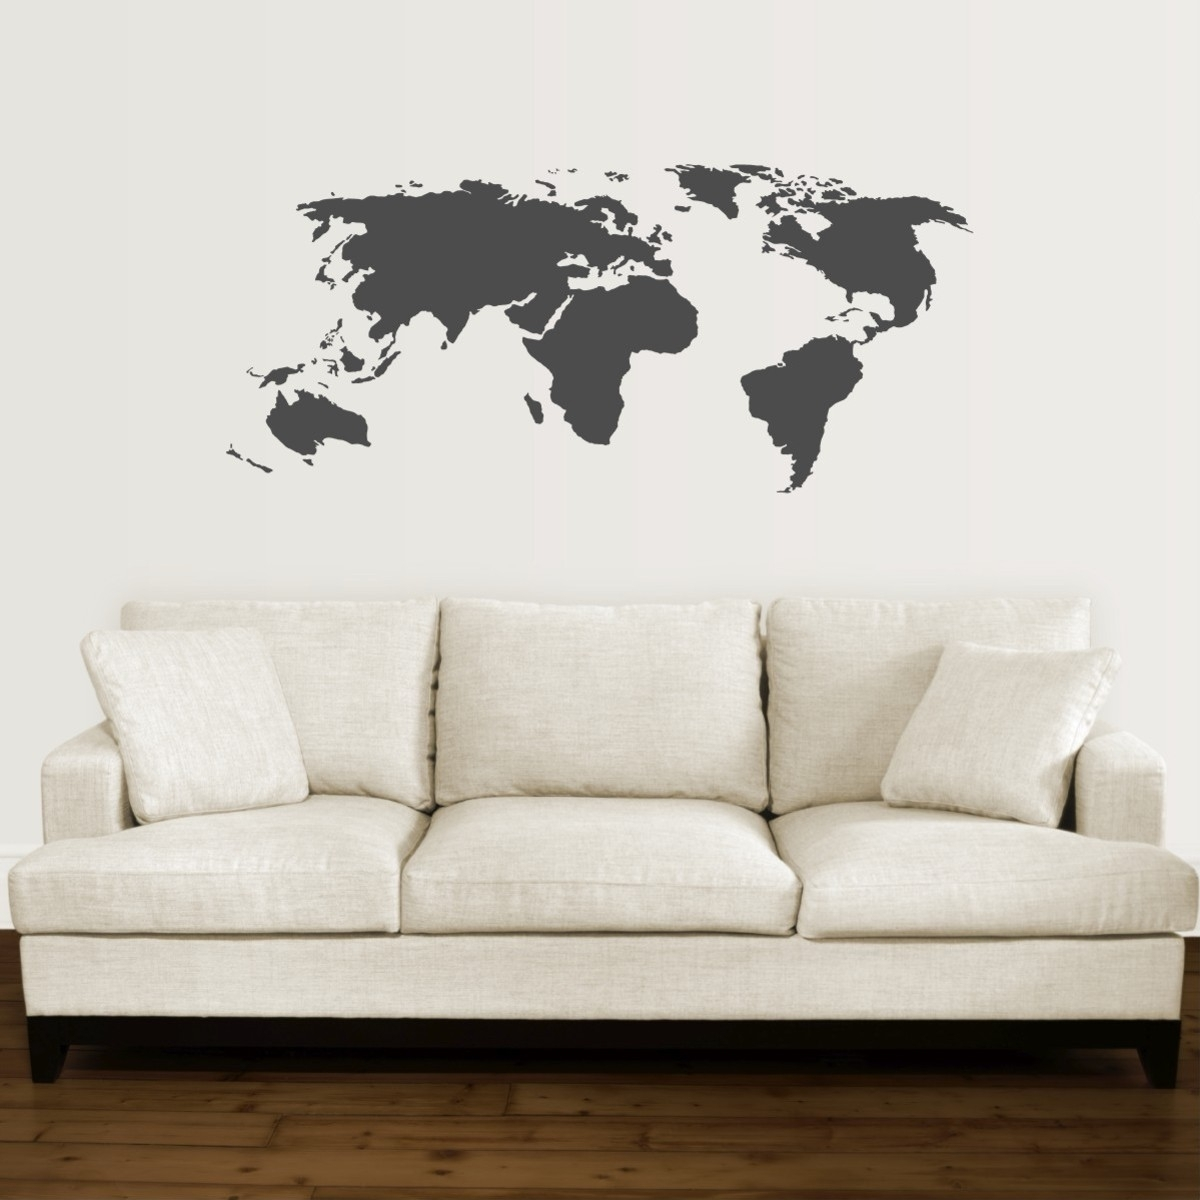 Newest 17 Cool Ideas For World Map Wall Art – Live Diy Ideas Intended For Wall Art Map Of World (View 7 of 15)